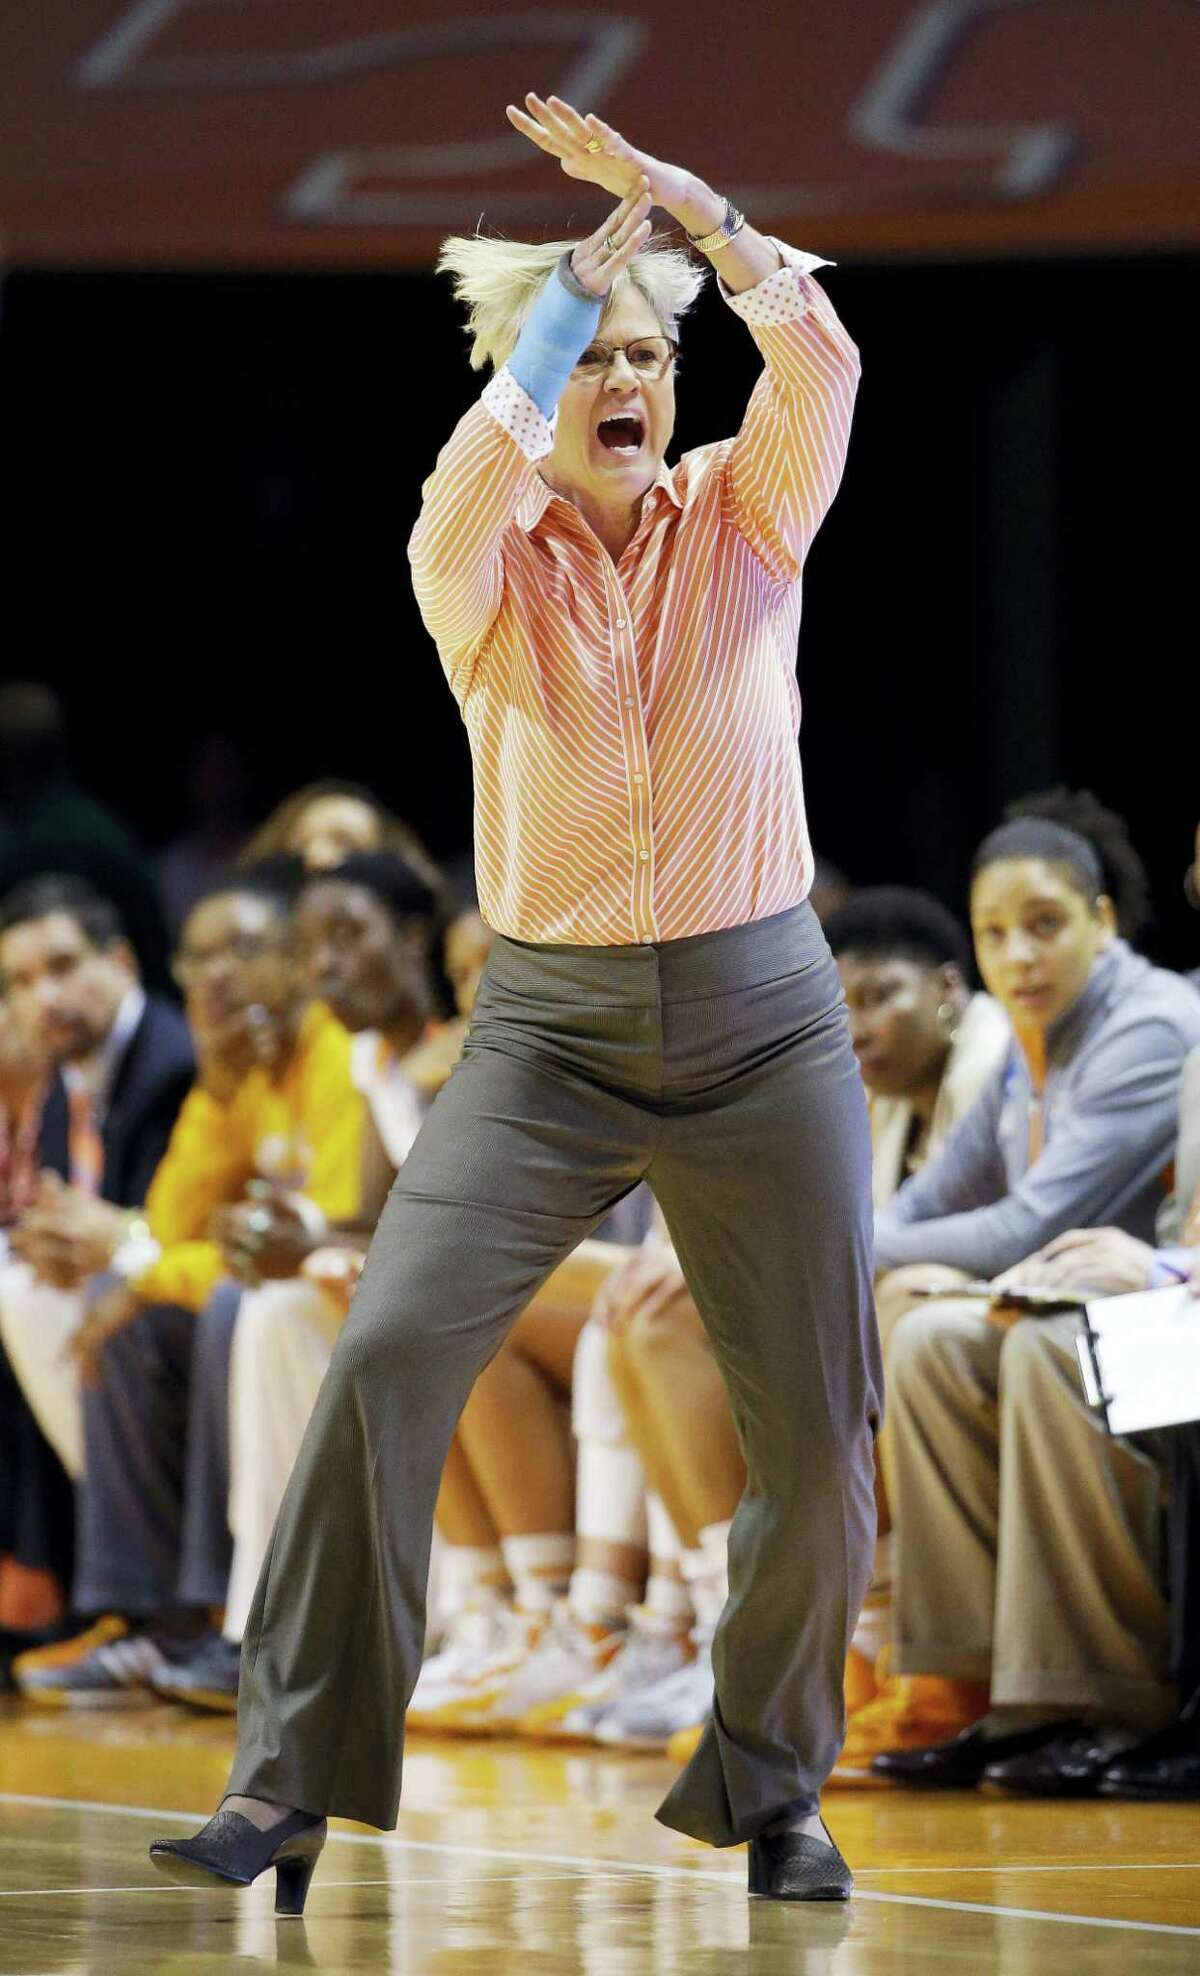 In this March 21, 2015 photo, Tennessee head coach Holly Warlick calls for a timeout in the first half of an NCAA women's college basketball tournament game against Boise State, in Knoxville, Tenn. The NCAA has altered a rule put into place last season that took away a coach's ability to call a timeout in live-ball situations. The new variance will allow them to call timeouts now, but only when the team is trying to inbound the ball.